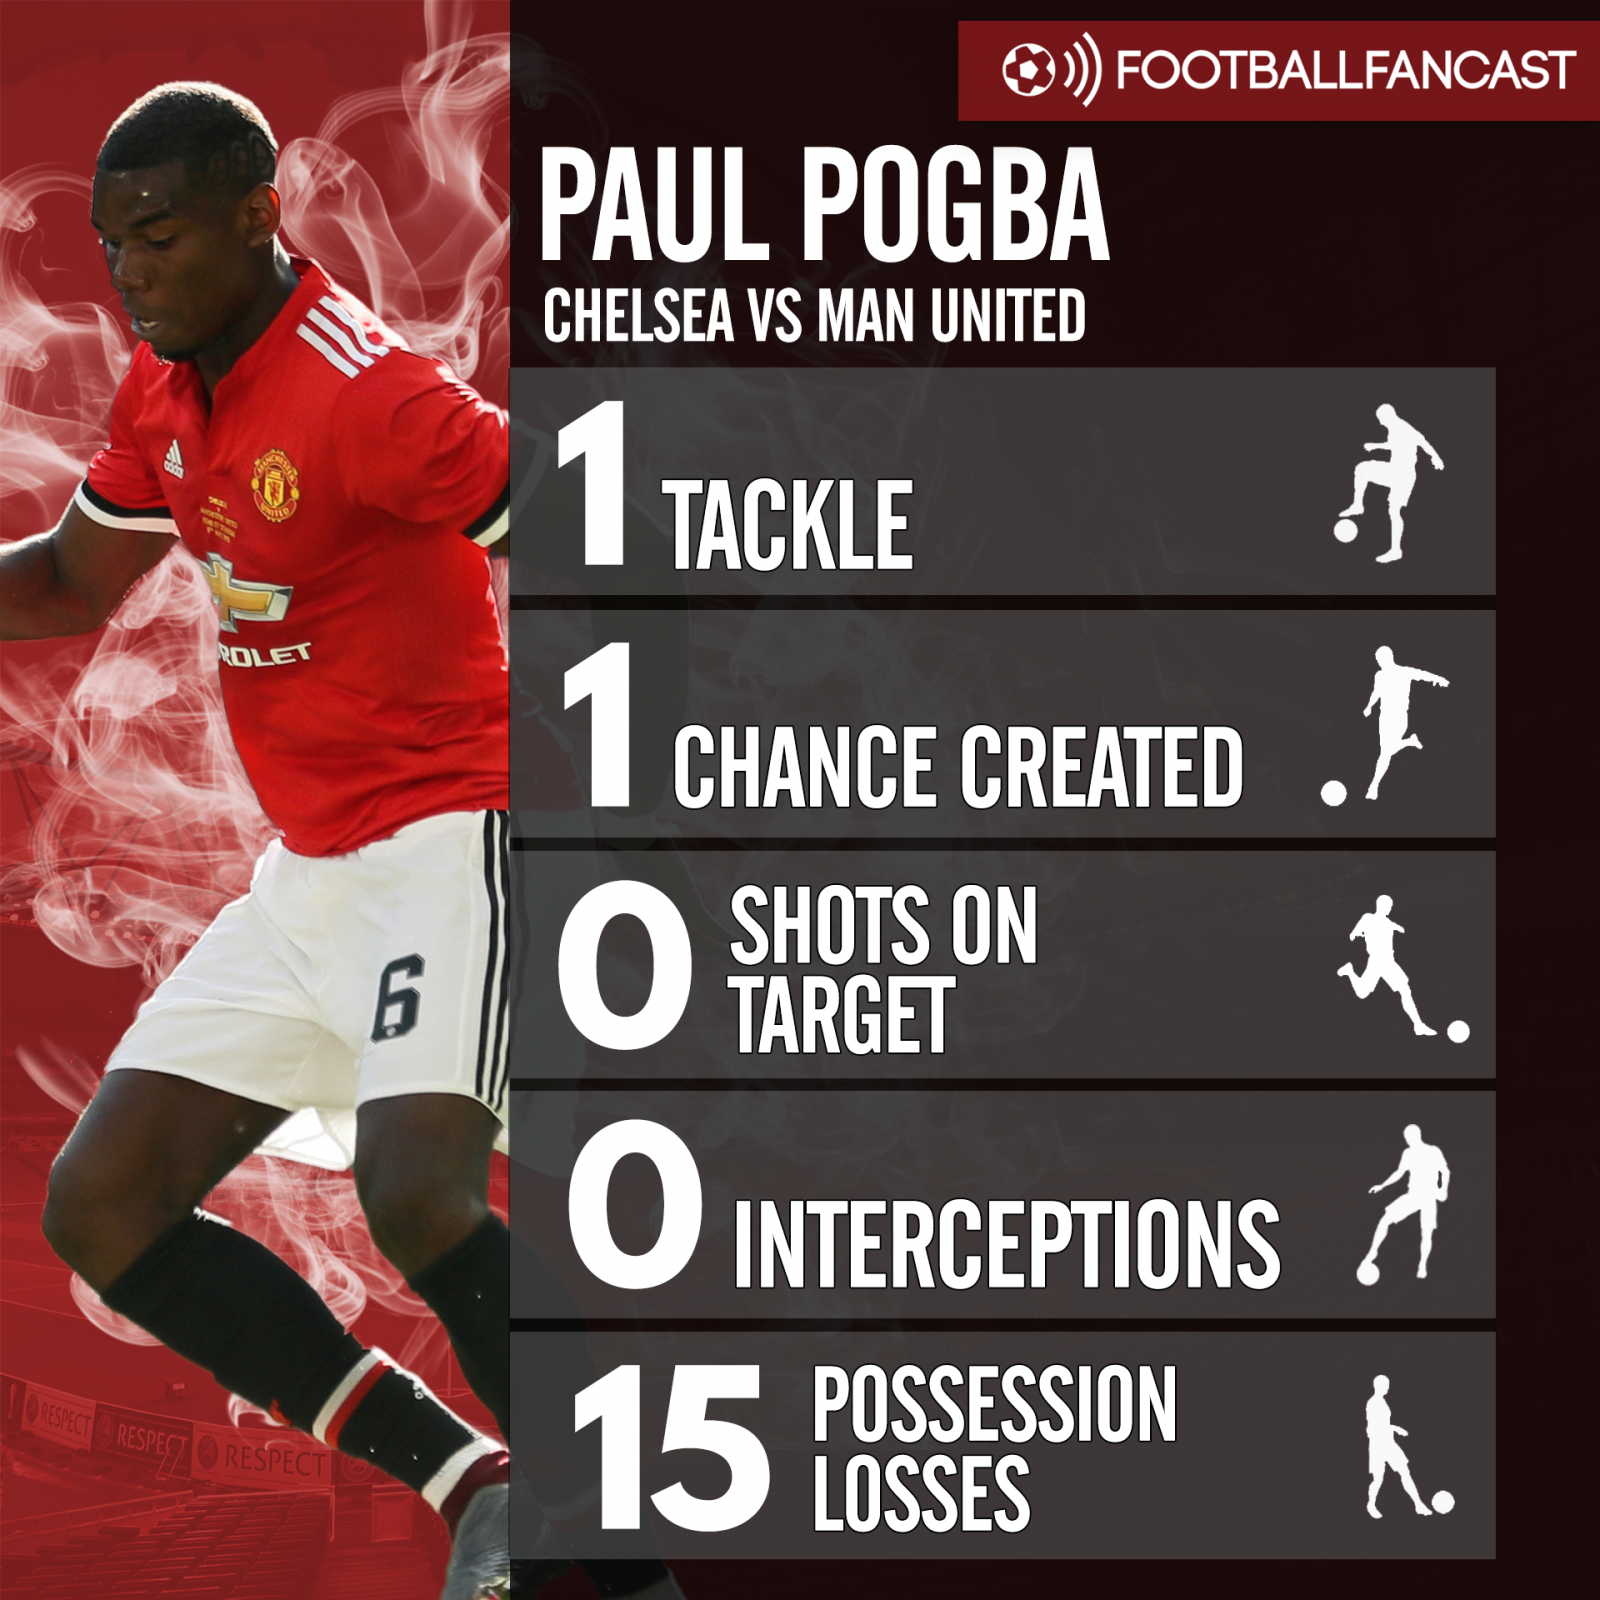 Paul Pogba's stats from Man United's 1-0 defeat to Chelsea